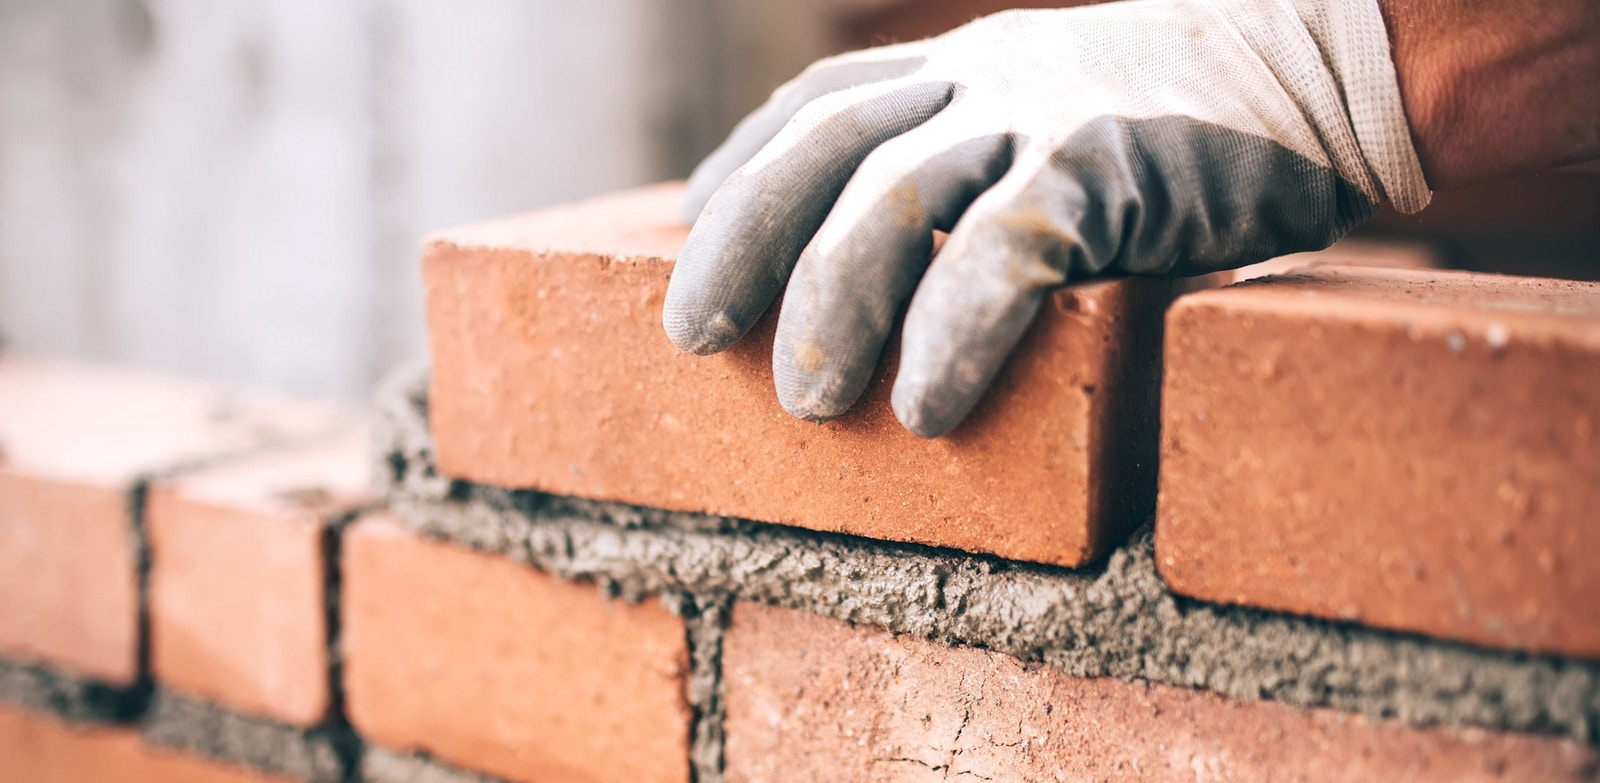 Laying Bricks image